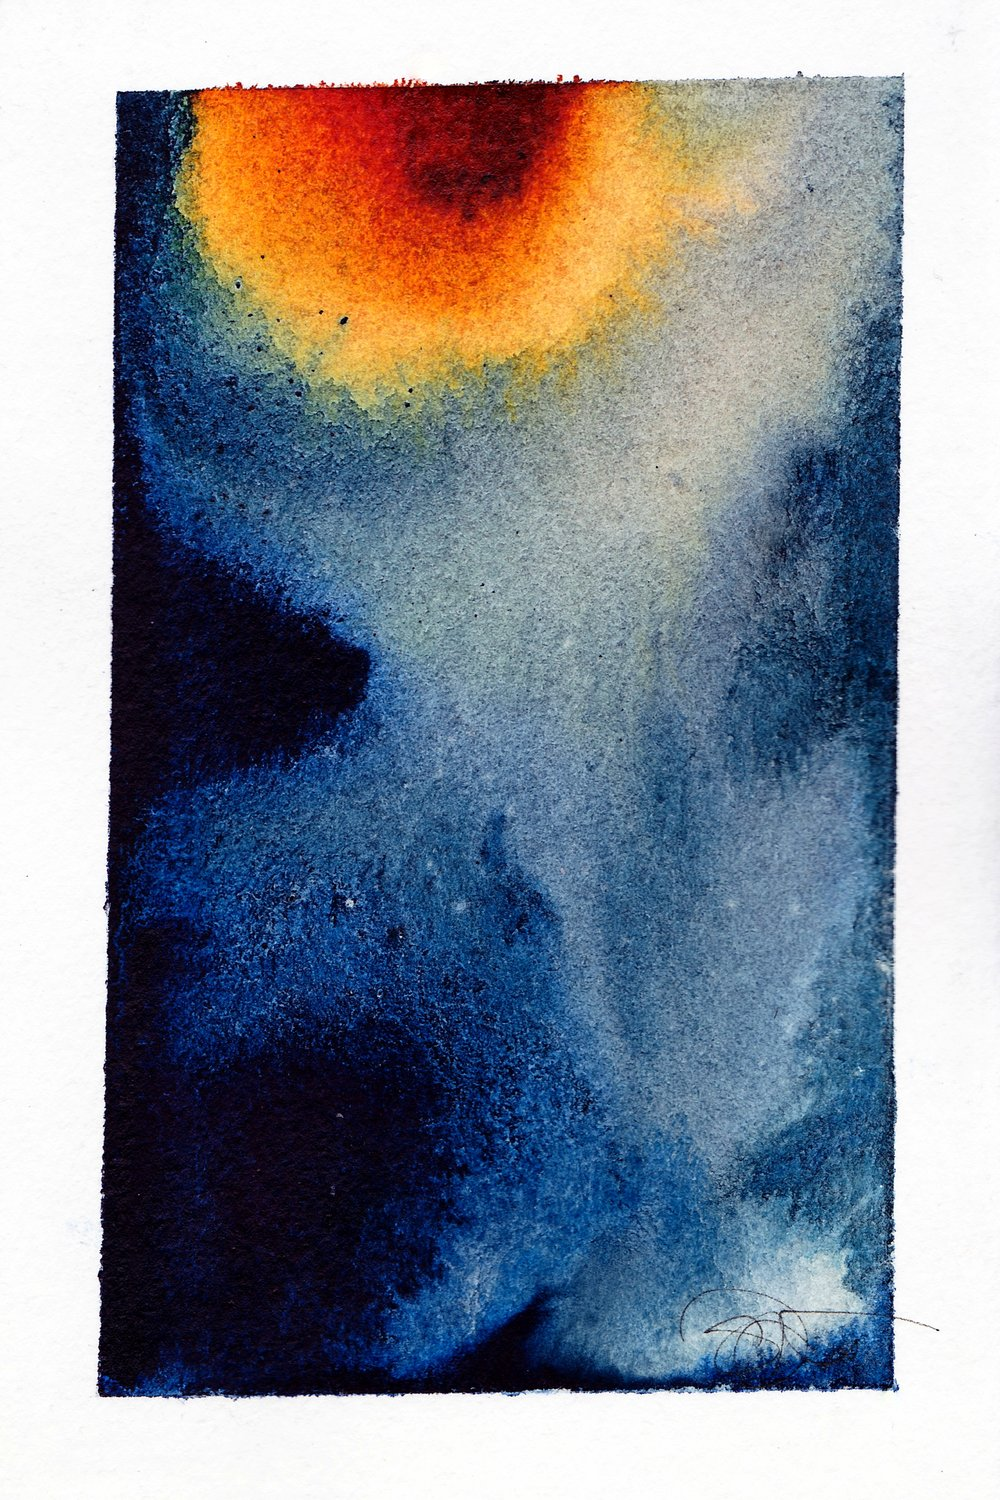 "Blood Moon Eclipse | Watercolor, Acrylic on Paper | 4"" x 6"""